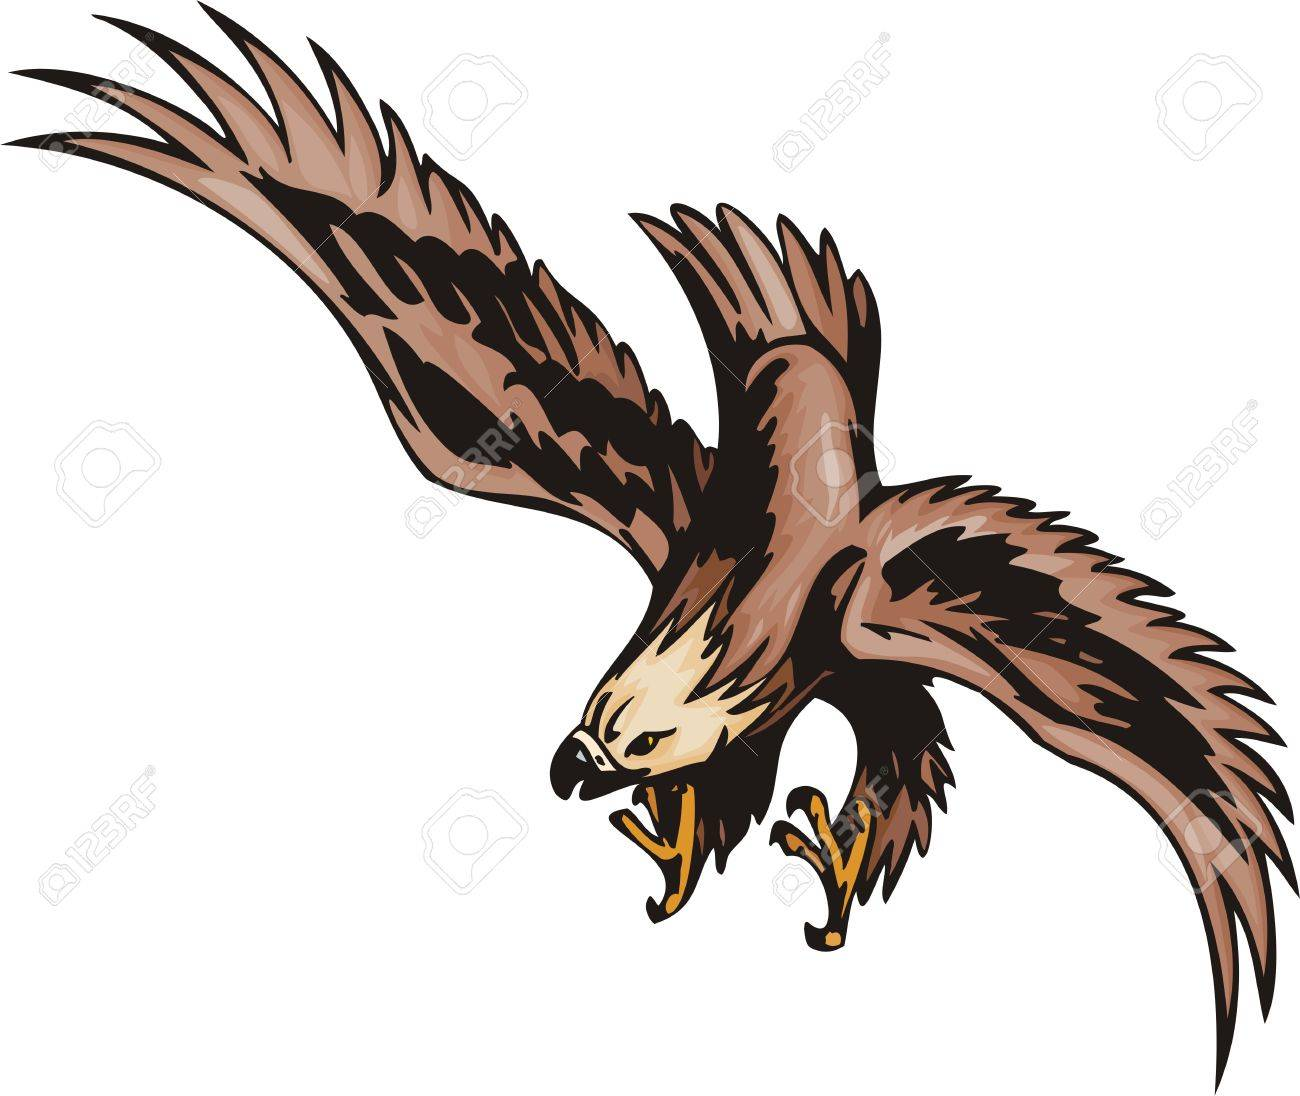 the eagle with brown plumage attacks extraction predatory birds